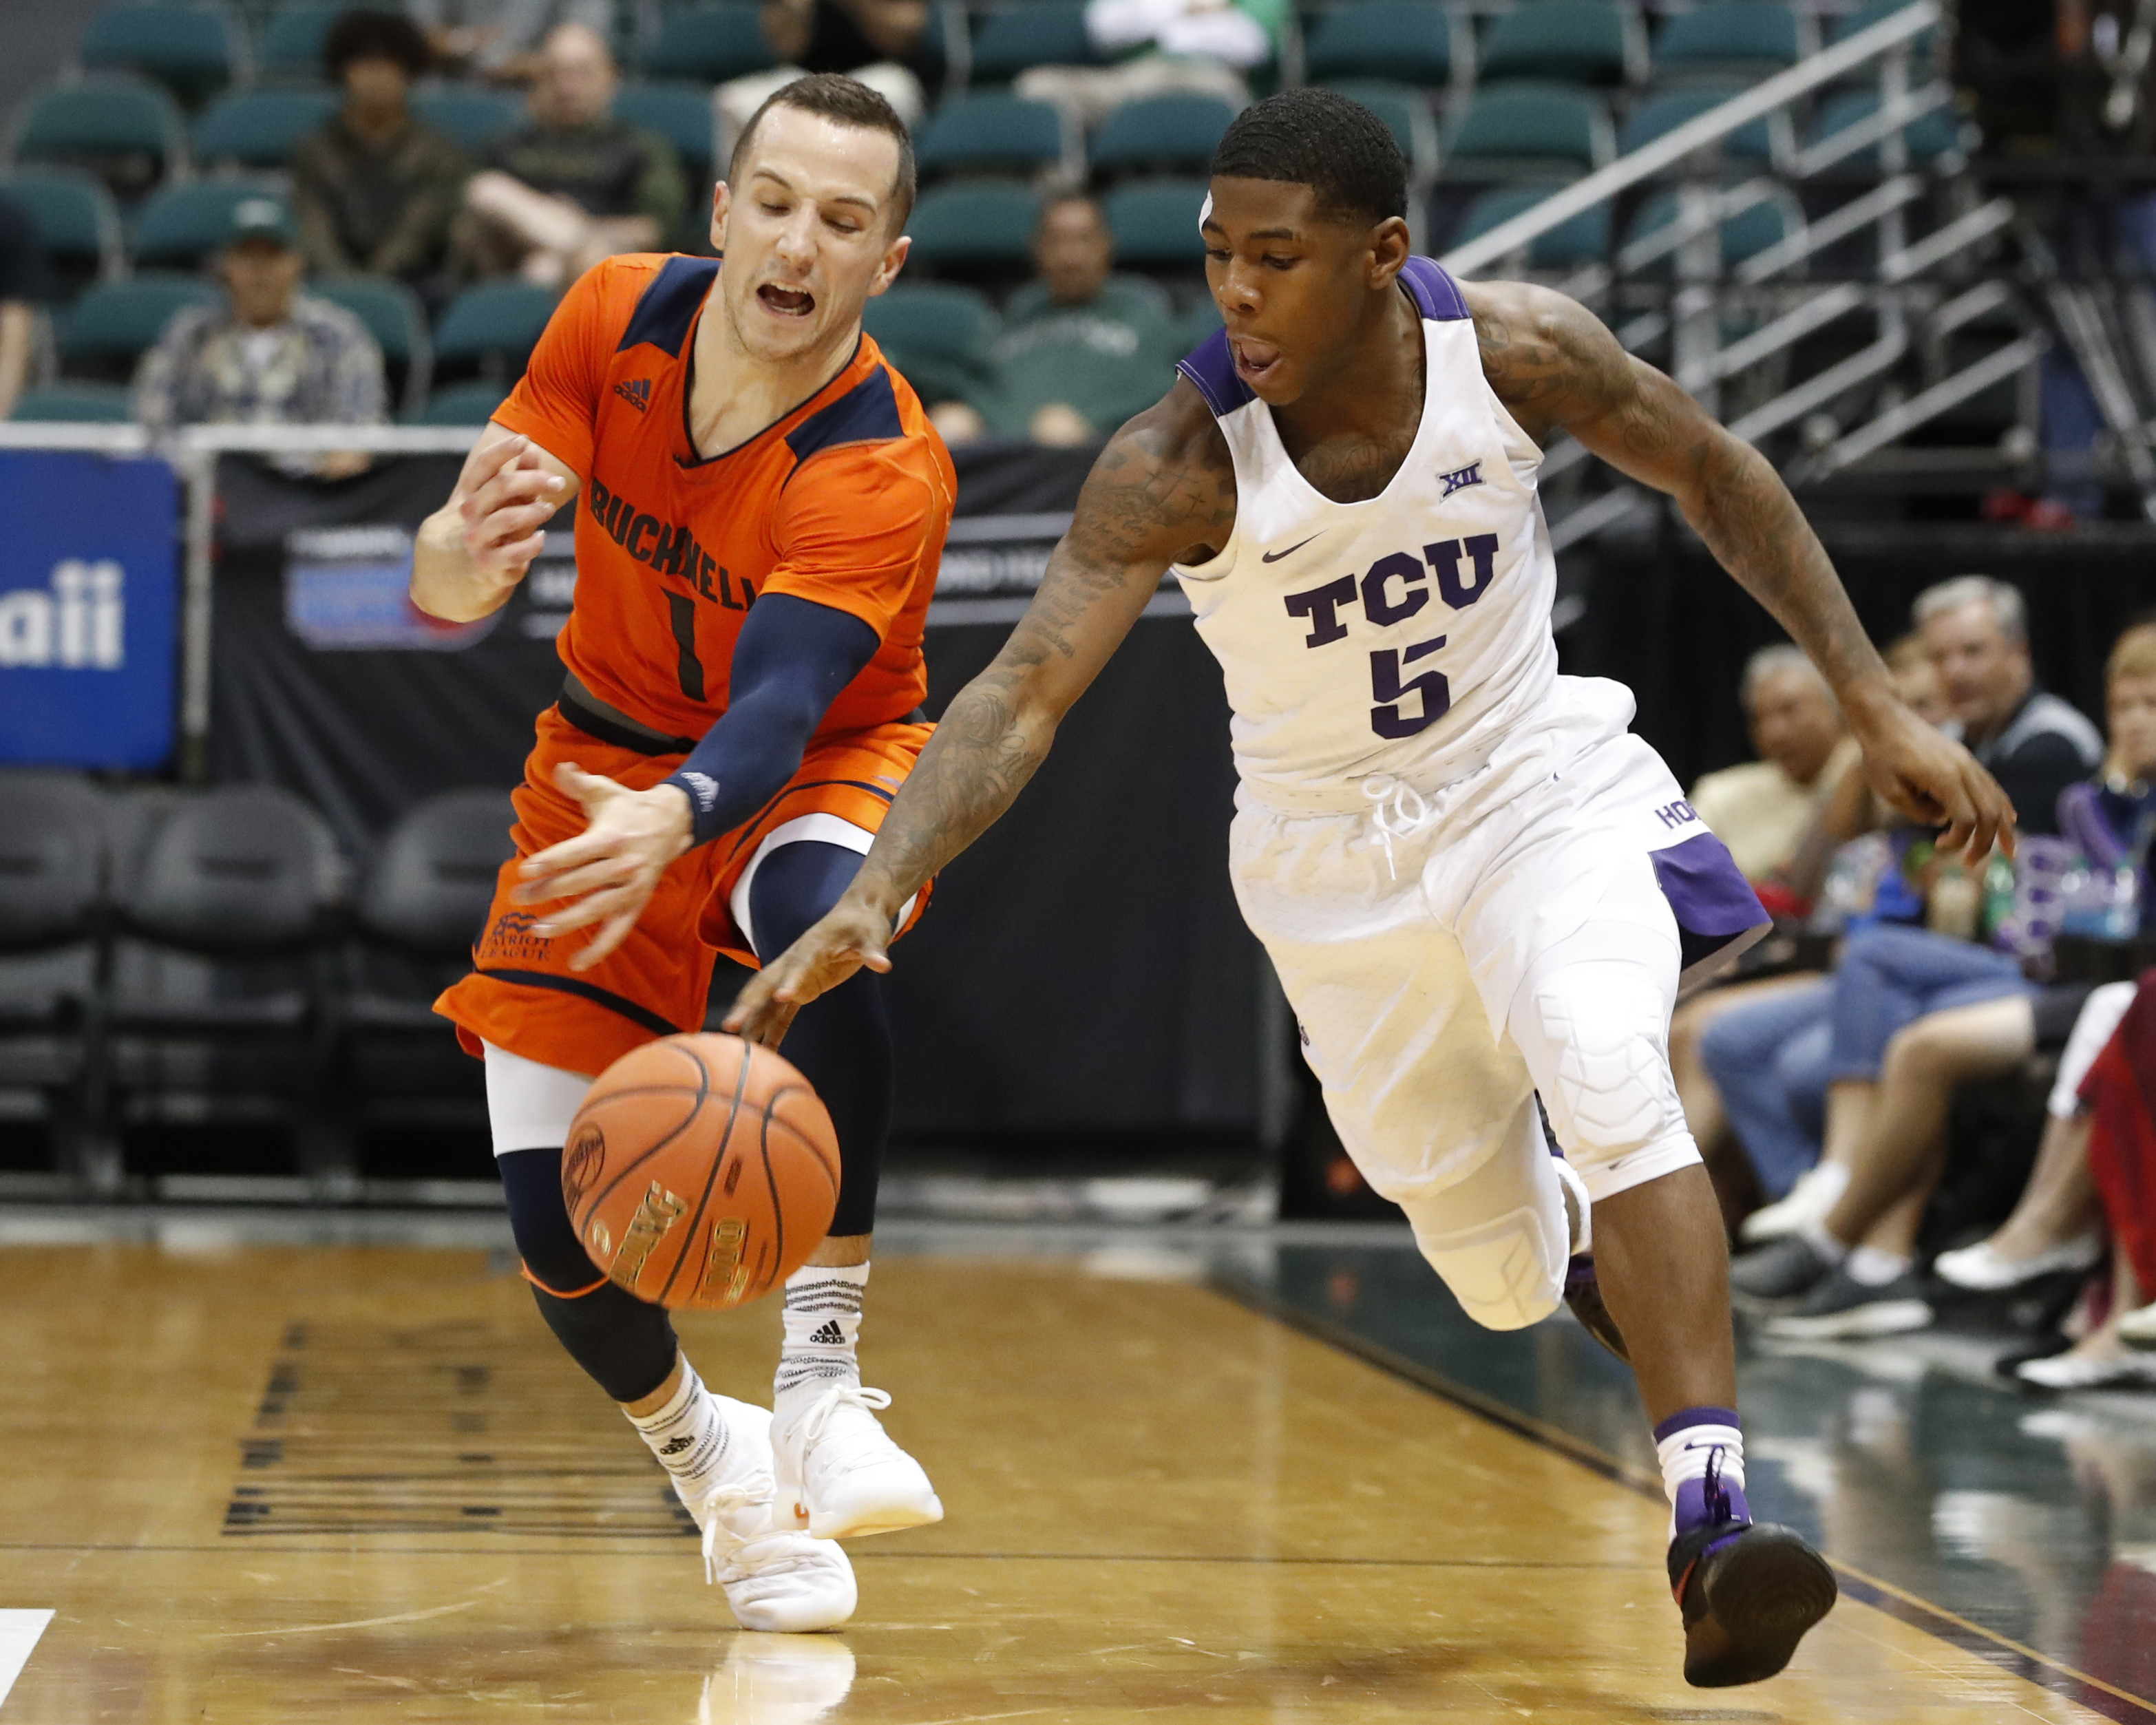 TCU advances to championship of Hawaii tournament with seventh-straight win